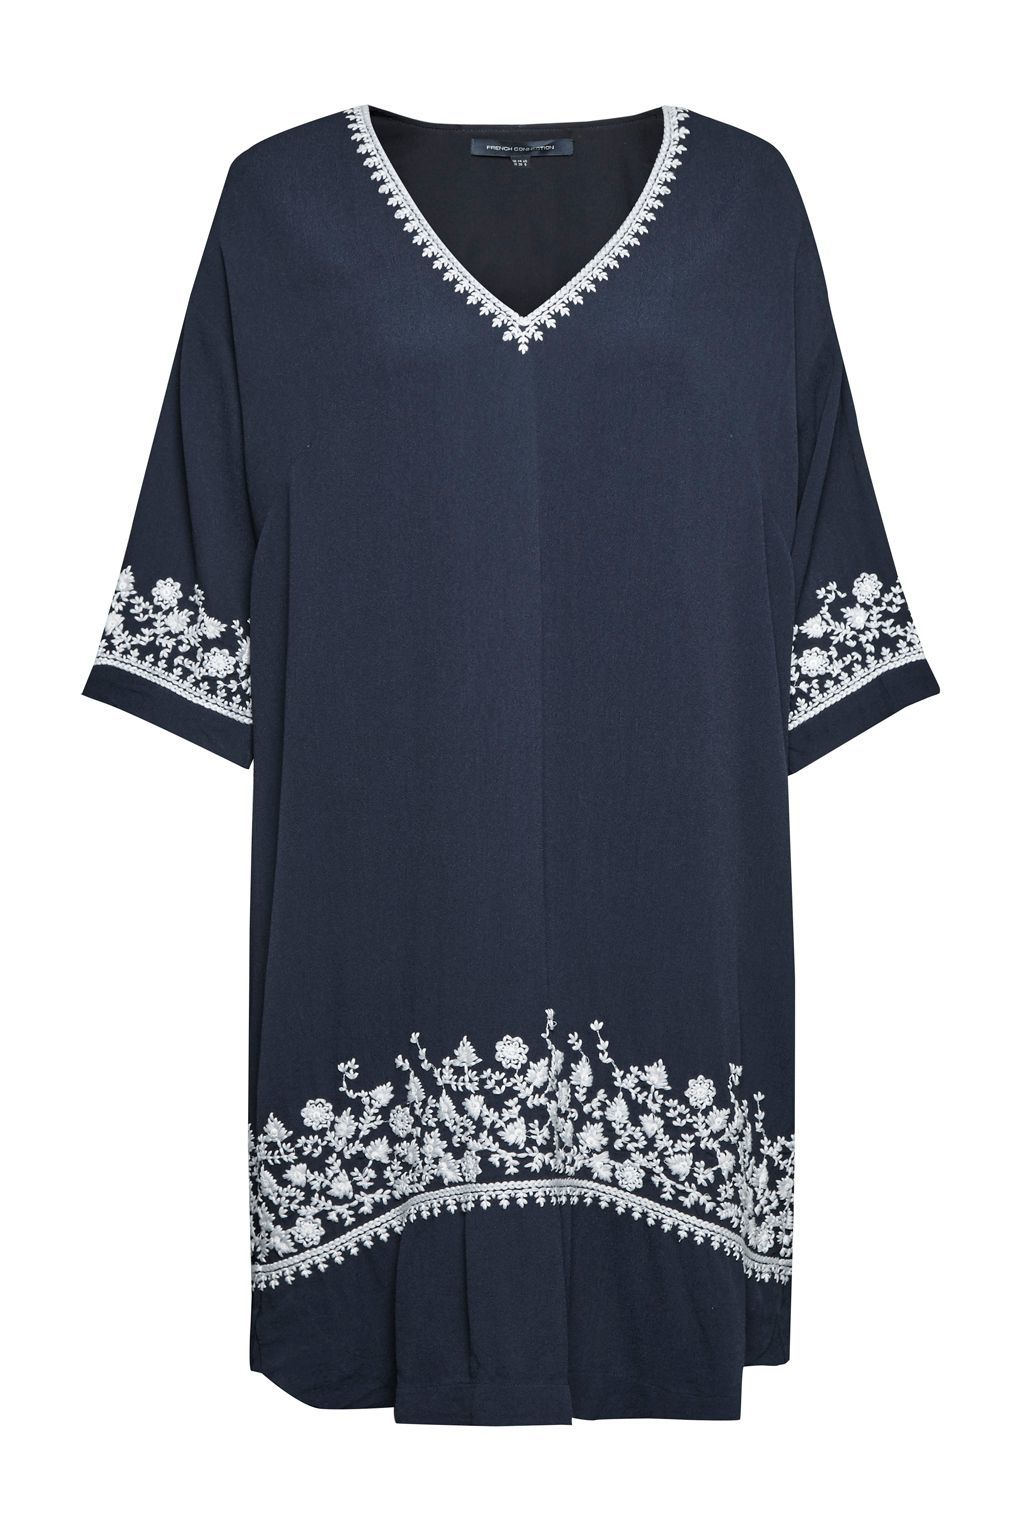 Jasmine Drape Embroidered Tunic Dress, Blue - style: tunic; neckline: v-neck; fit: loose; secondary colour: white; predominant colour: navy; occasions: casual; length: just above the knee; fibres: viscose/rayon - 100%; sleeve length: 3/4 length; sleeve style: standard; pattern type: fabric; pattern size: standard; pattern: patterned/print; texture group: other - light to midweight; embellishment: embroidered; season: s/s 2016; wardrobe: highlight; embellishment location: hem, neck